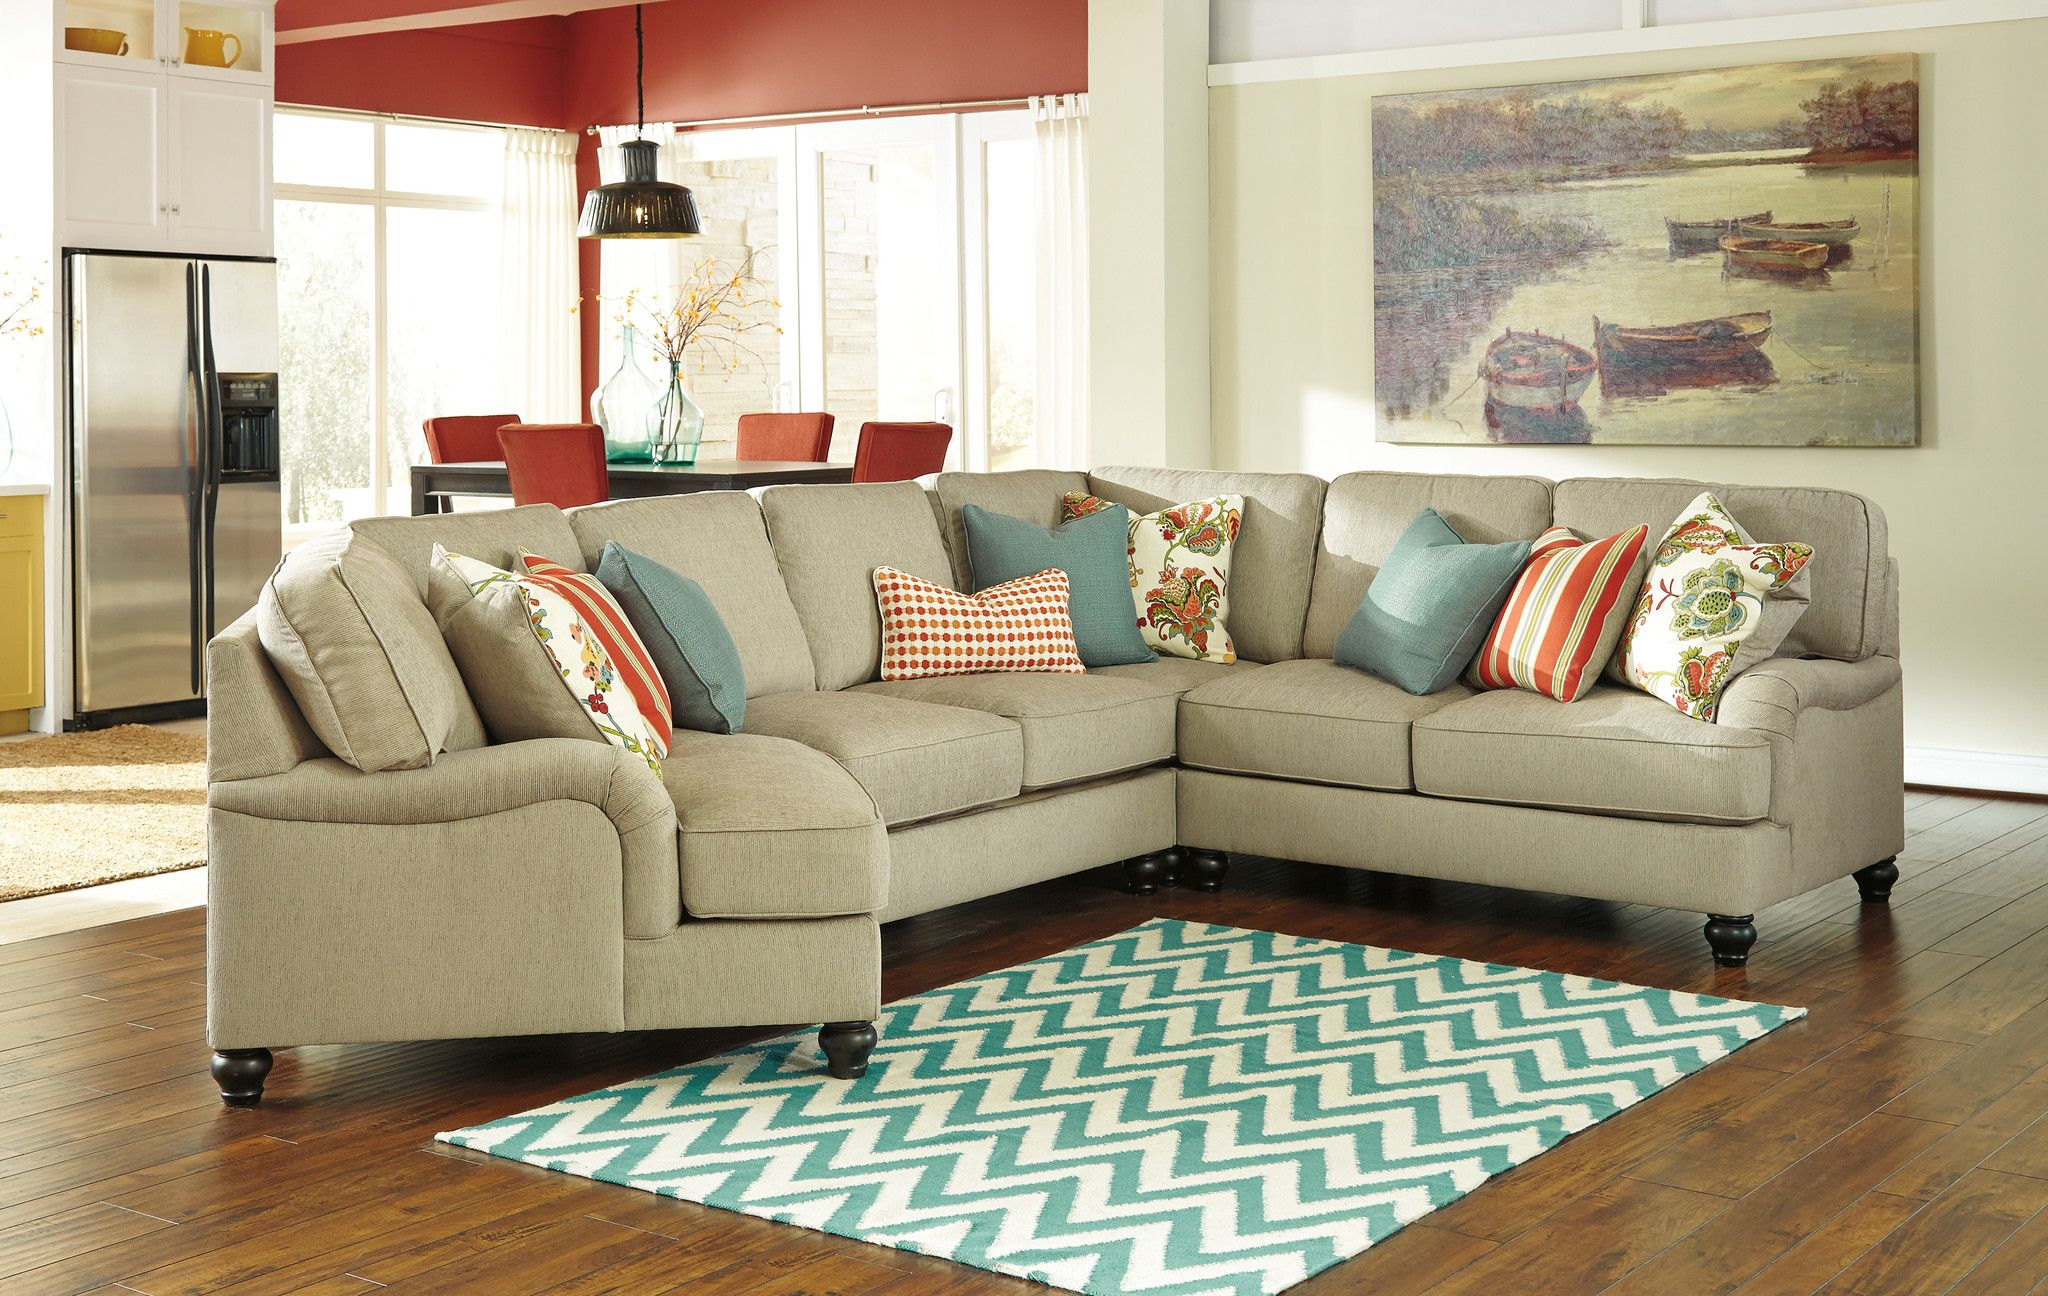 cuddler chaise sectional Google Search Furniture